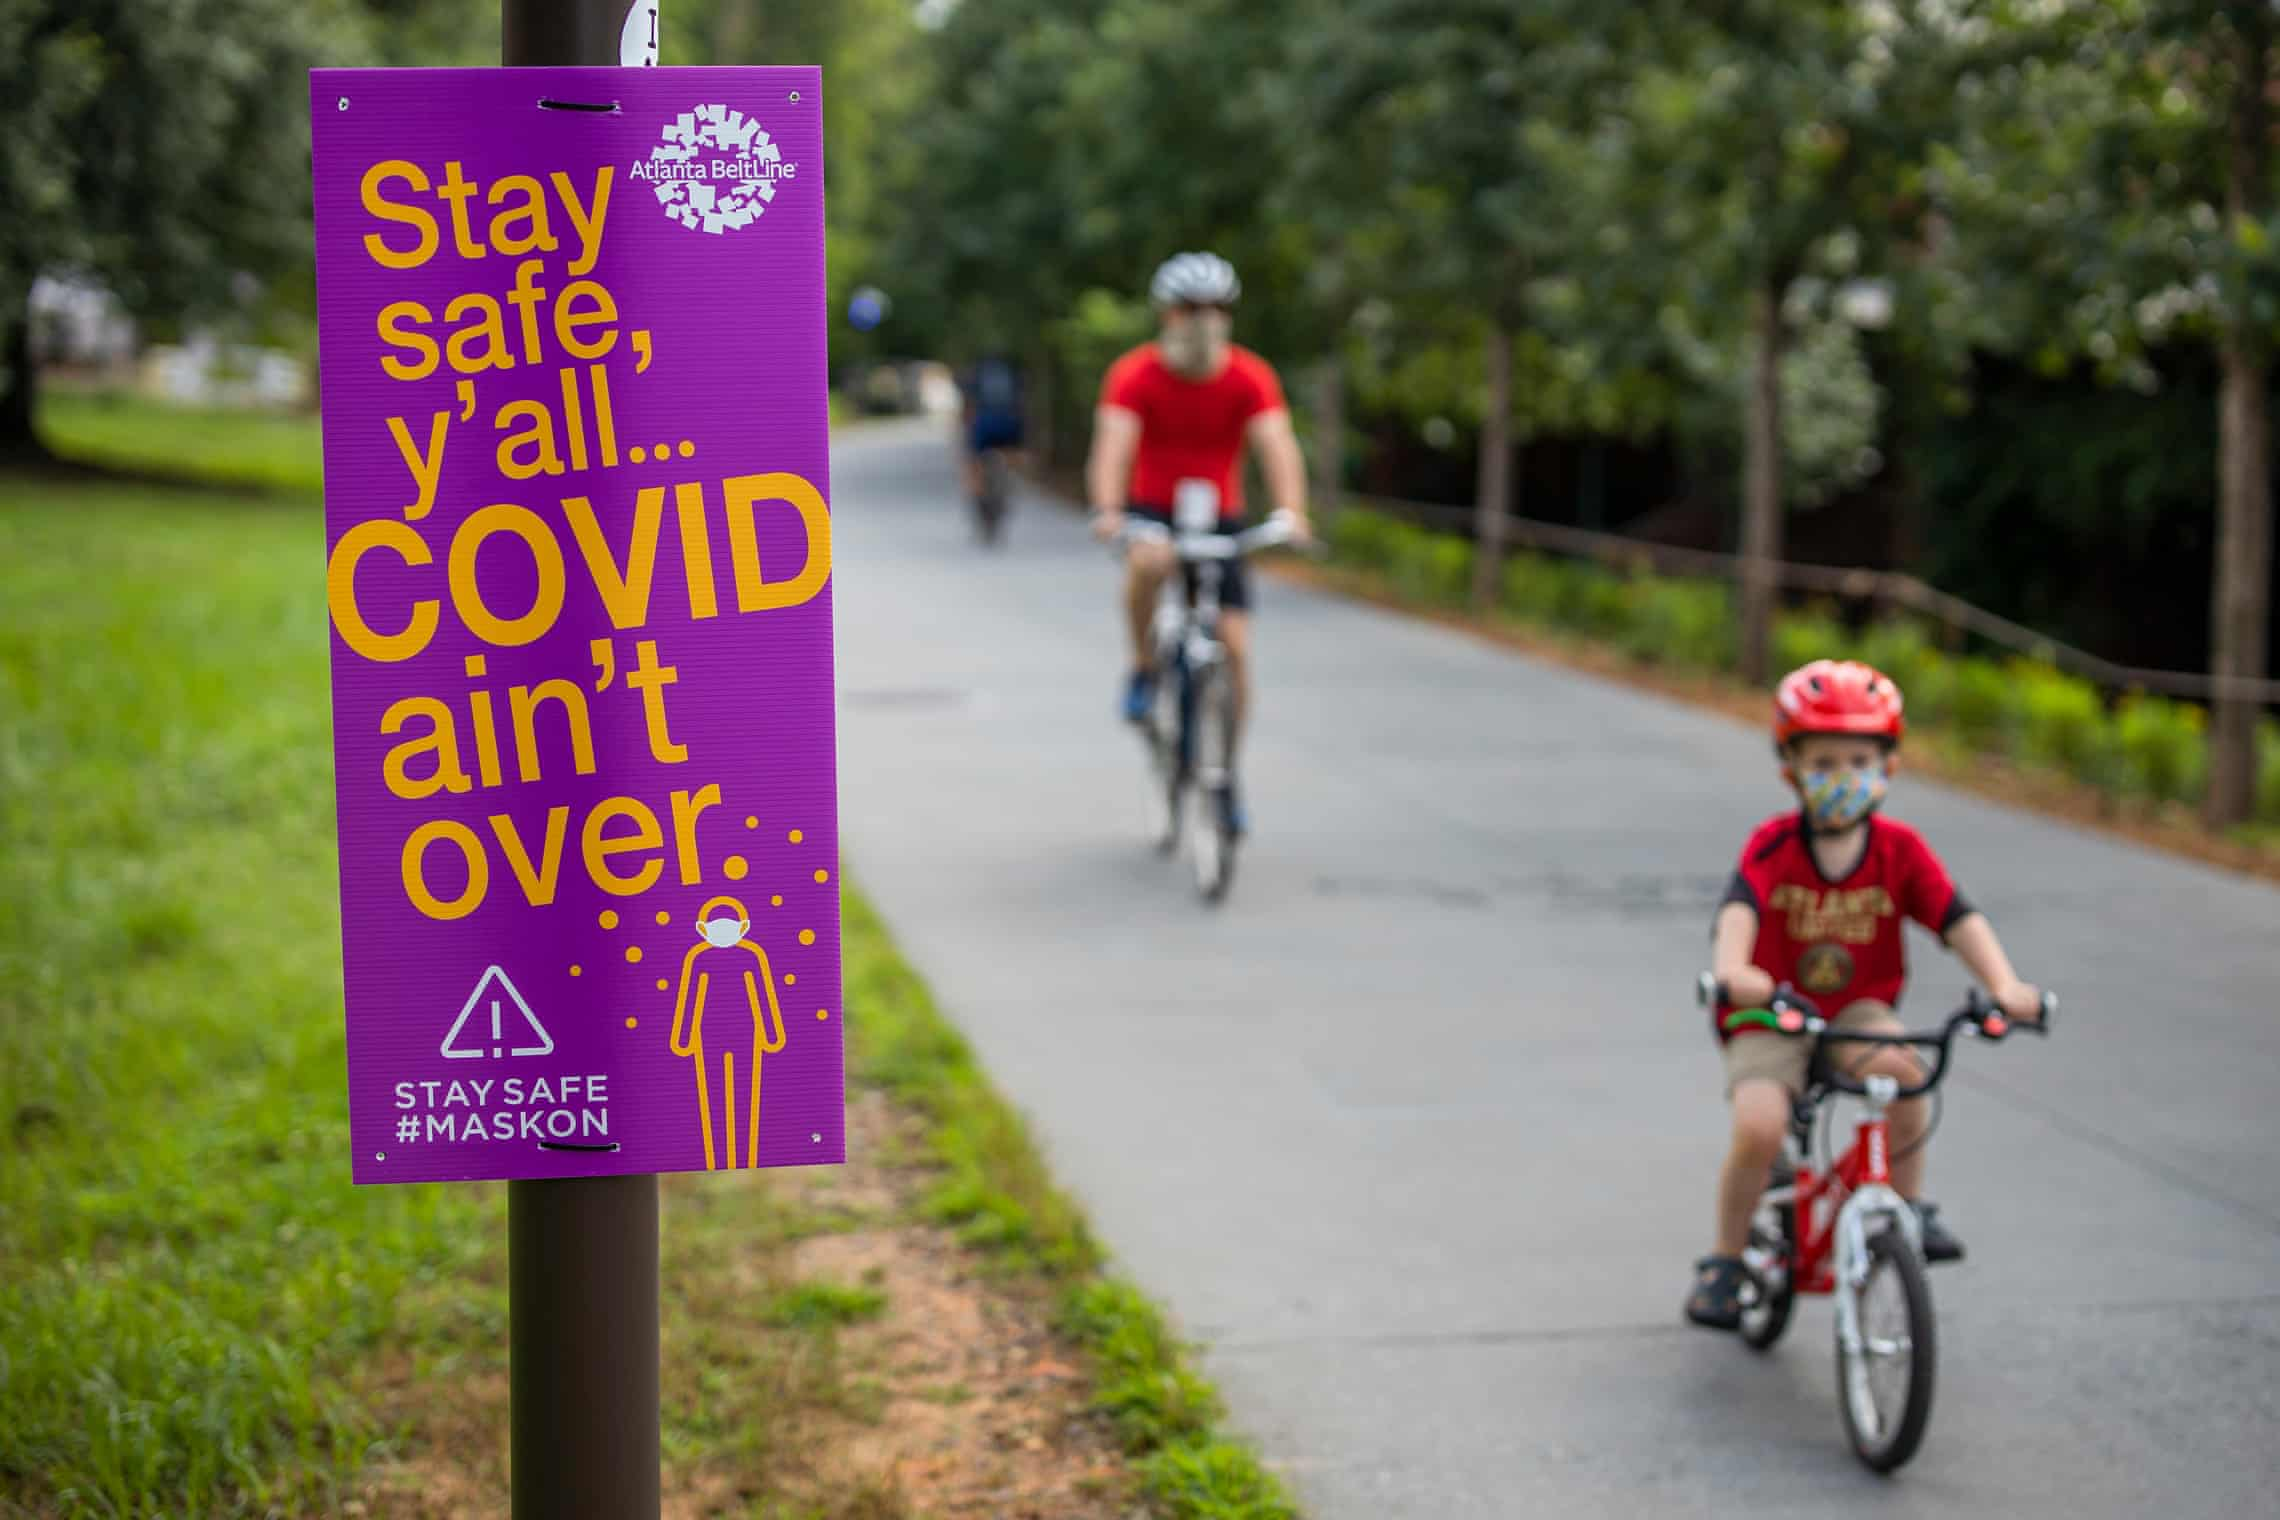 Safety information signs are seen along the Atlanta Beltline pedestrian and bike trail in Atlanta, Georgia. Photograph: Erik S Lesser/EPA